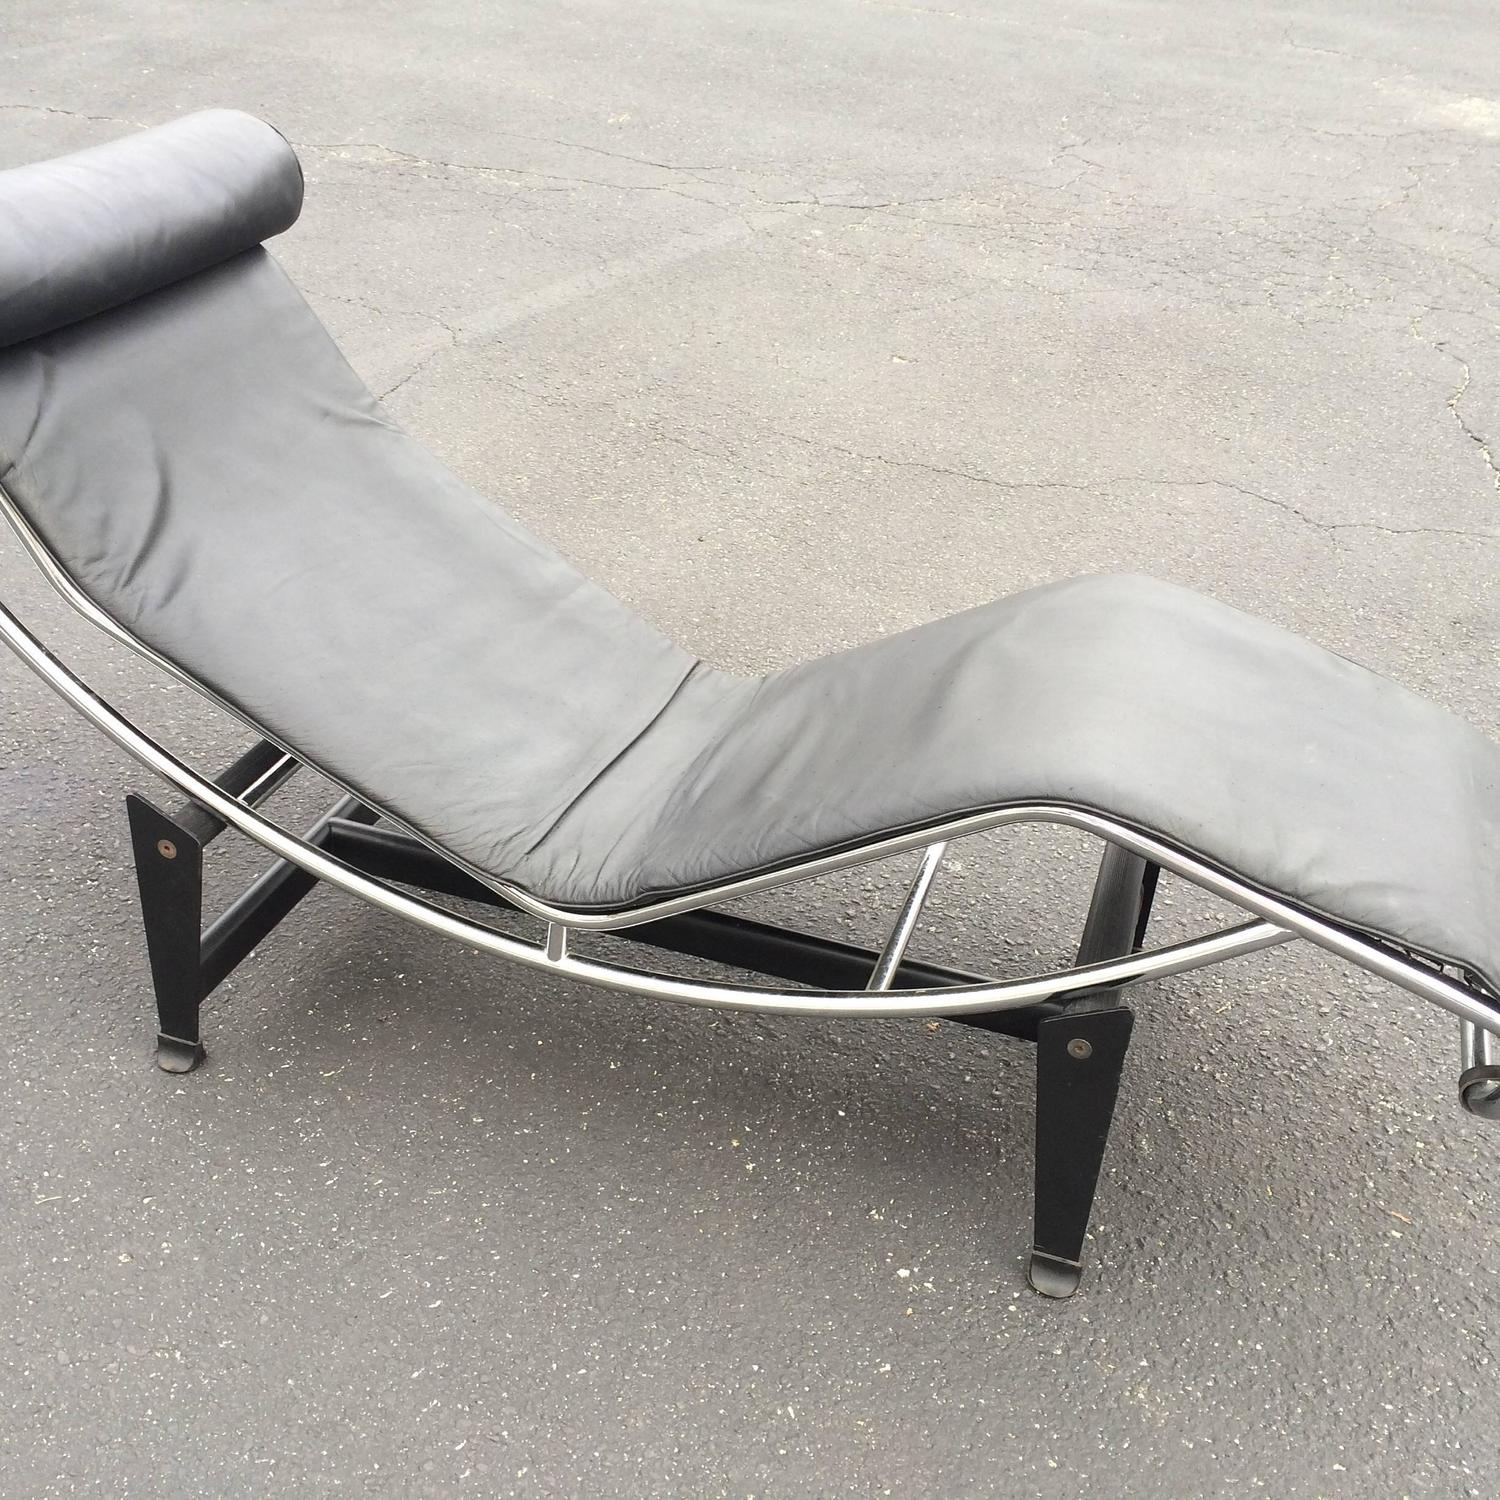 Le corbusier lc4 chaise longue in black leather at 1stdibs for Black leather chaise